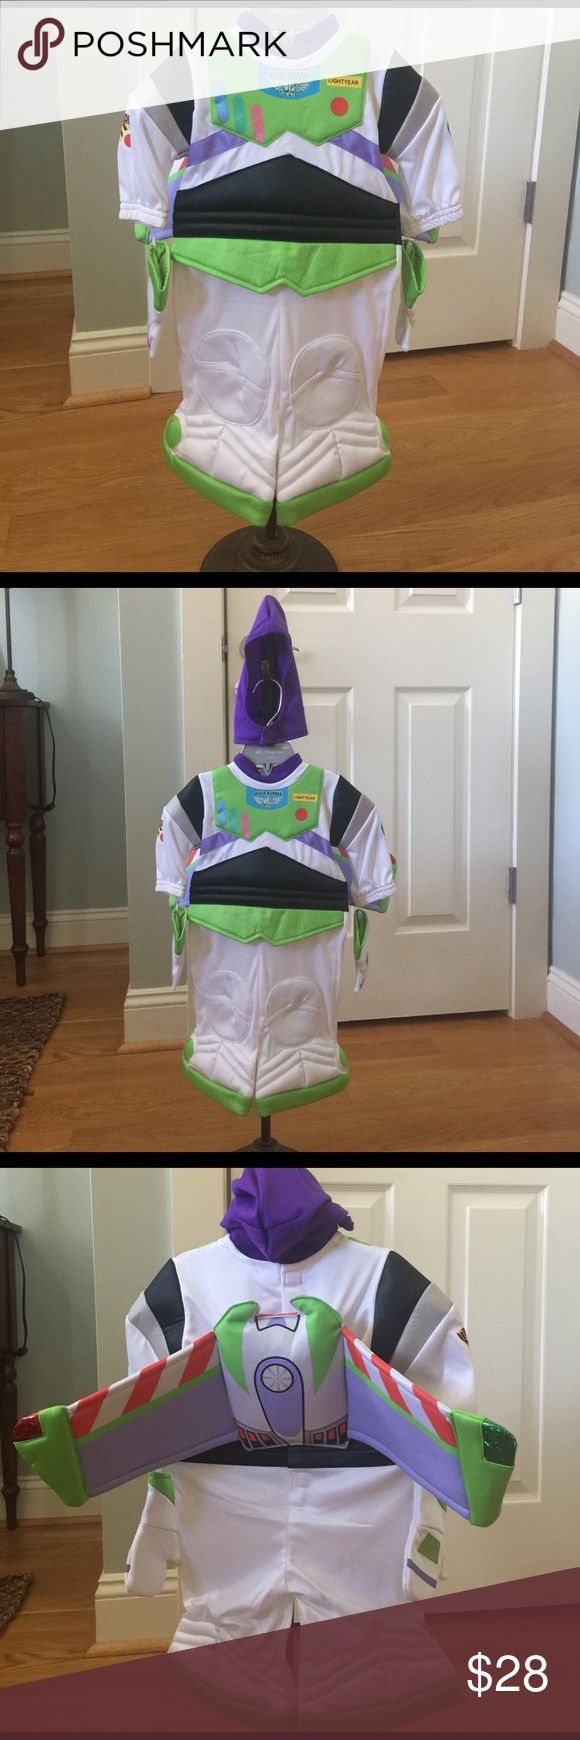 Disney's baby 🚀Buzz Lightyear🚀 Space Ranger Disney's baby 🚀Buzz Lightyear🚀 Space Ranger 3-6 months old!!  This costume is the cutest. It has detachable wings, by Velcro gloves, and a purple hood!!  NWT and is perfect for the new baby boy this summer to use in October!! Disney baby by Disney Store Costumes Halloween